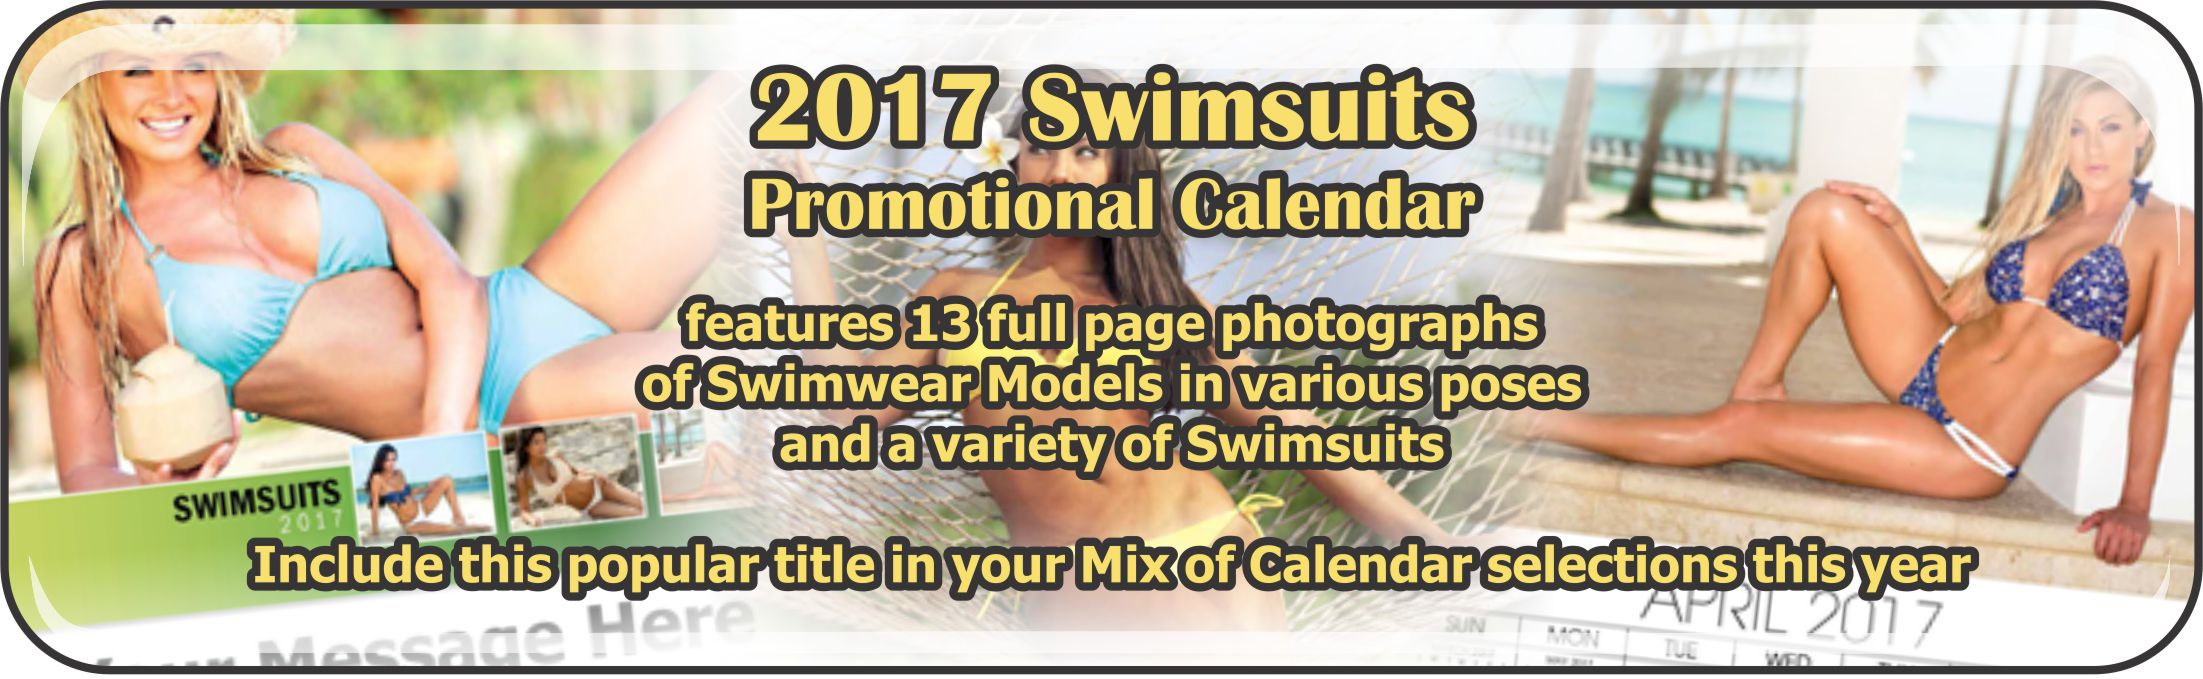 Promotional Calendars Direct featured Wall Calendar for Swimsuits